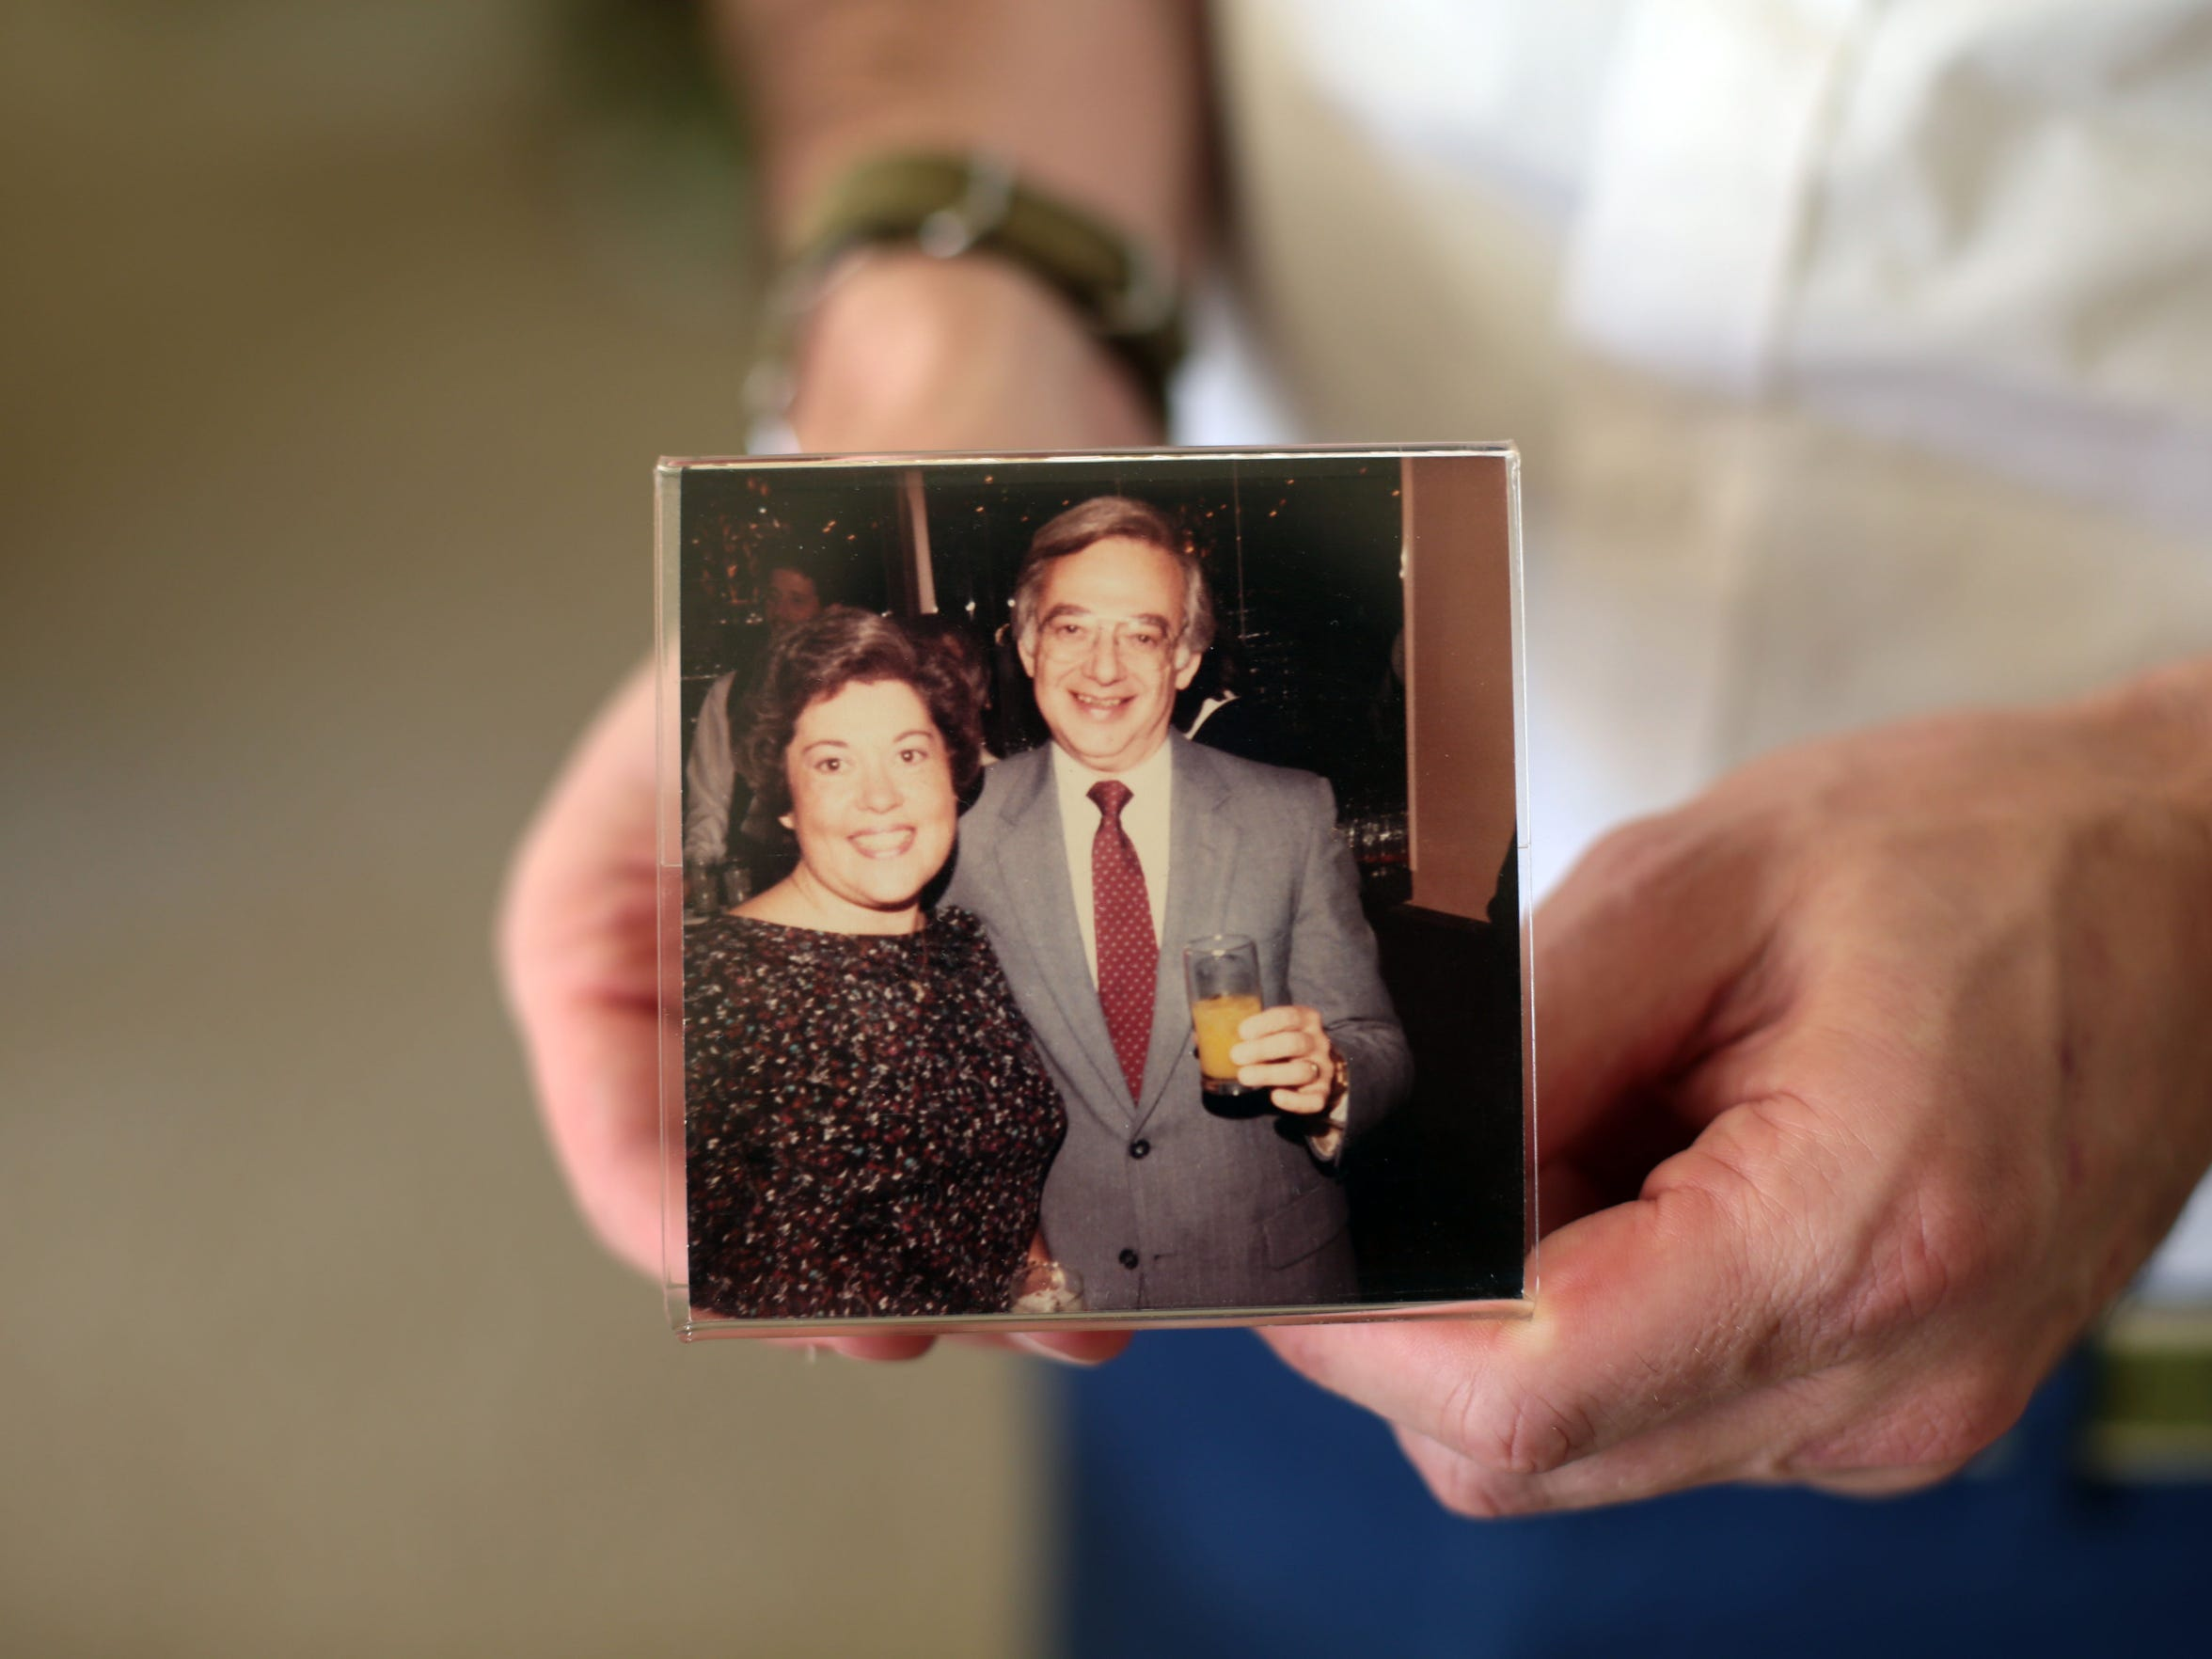 Jerry Sallo holds a photo of himself and his wife Jane who died in September after a decade long battle with Alzheimers. Photo taken at his home in Rancho Mirage on Thursday, February 11, 2016. Jerry tried to care for Jane at home first by himself then with caregivers. Eventually the work became to much and Jerry placed his wife into a home.